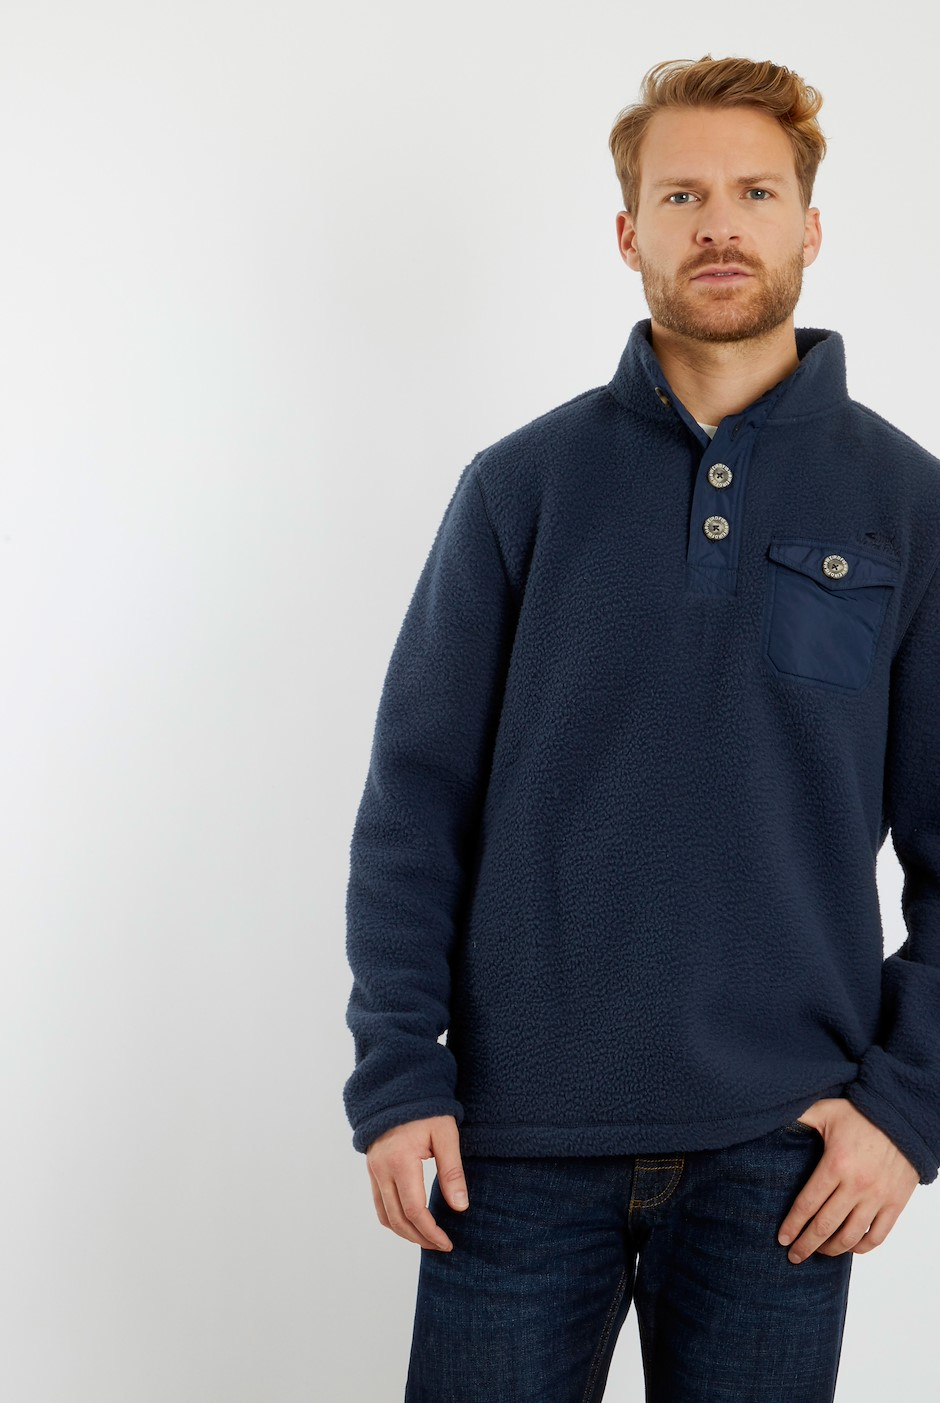 Byron Button Neck Fleece Sweatshirt Navy